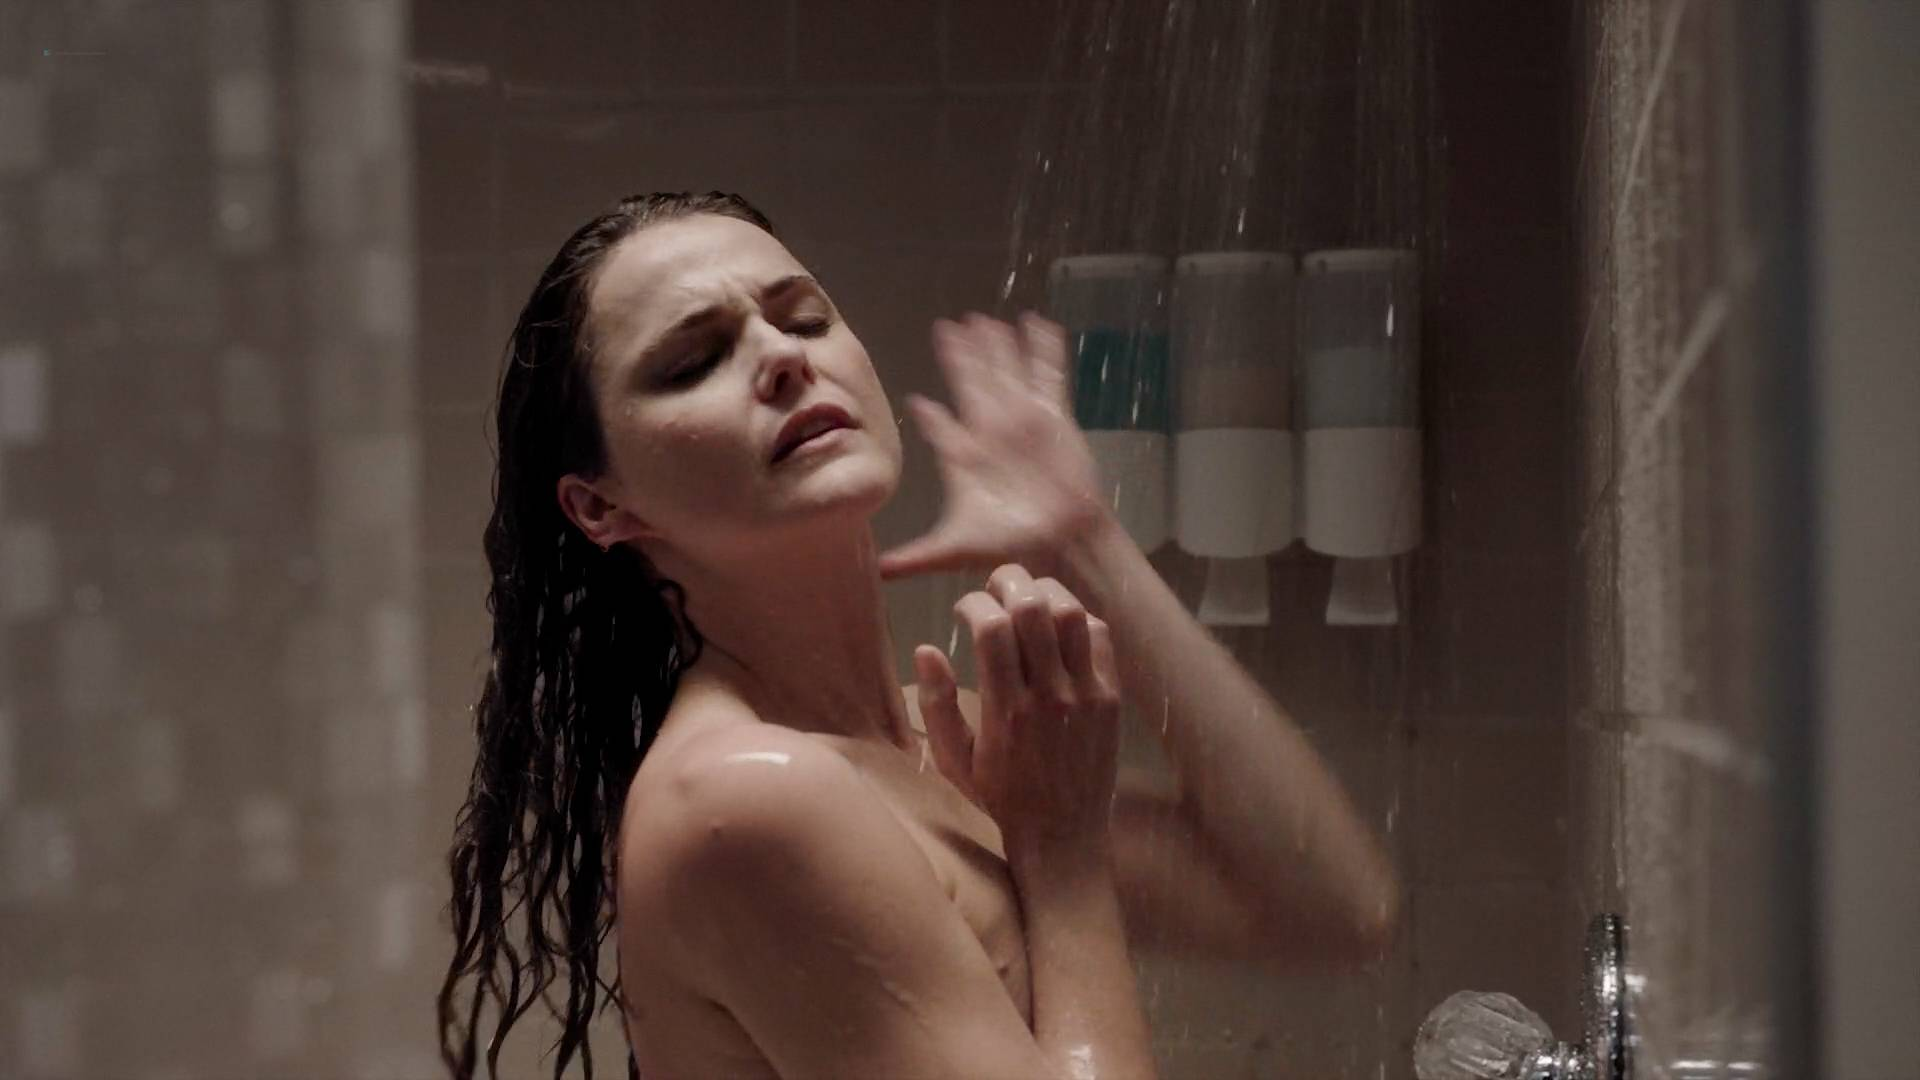 Keri Russell nude butt in the shower -The Americans (2017) s5e2 HD 1080p (9)